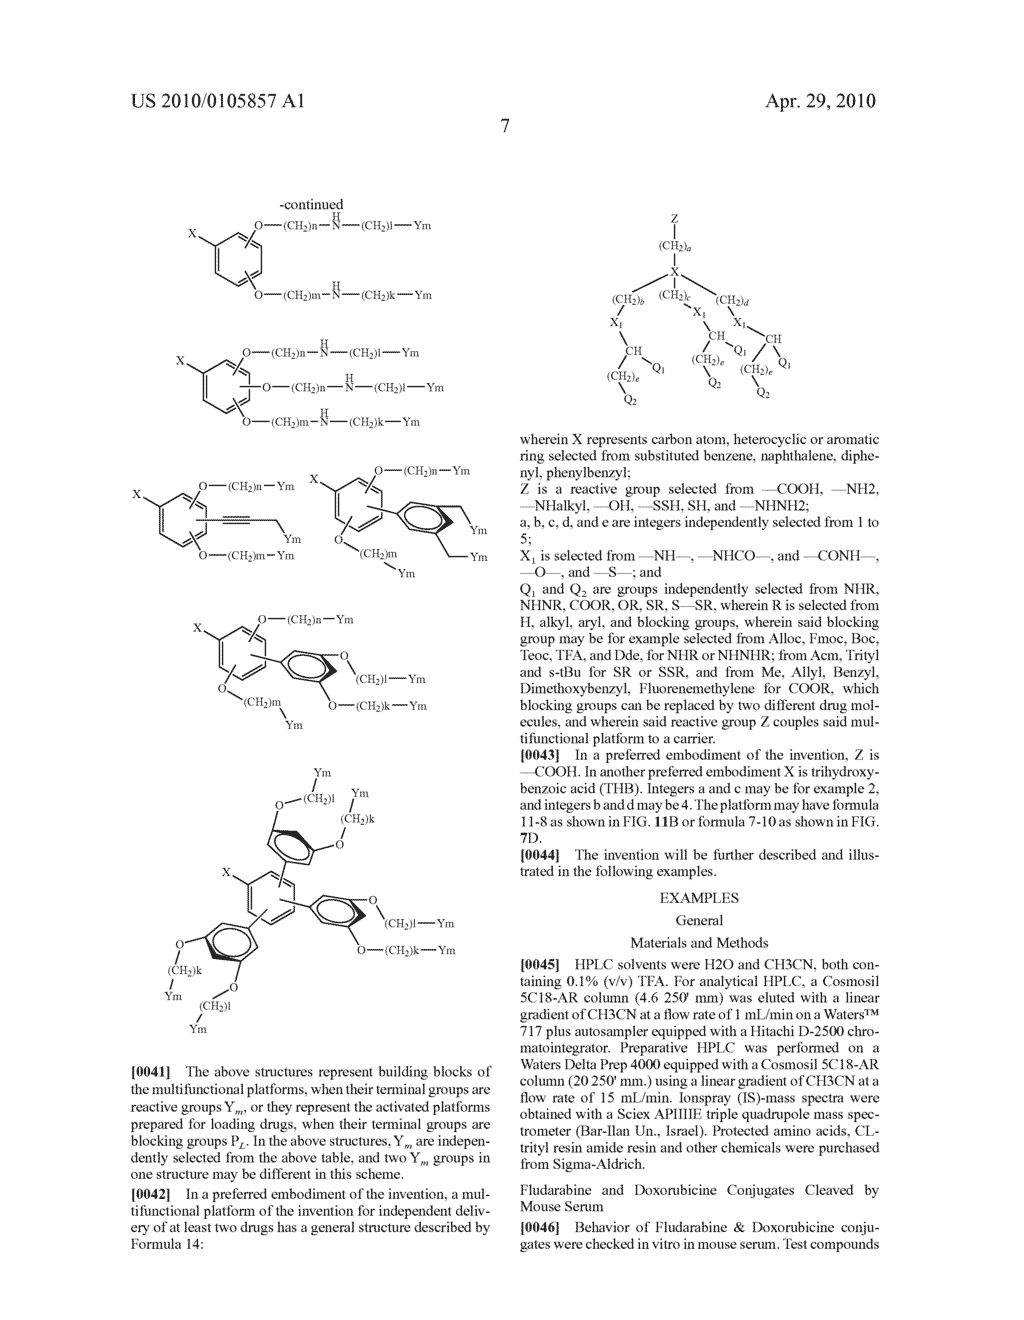 DENDRIMERIC PLATFORM FOR CONTROLLED RELEASE OF DRUGS - diagram, schematic, and image 61